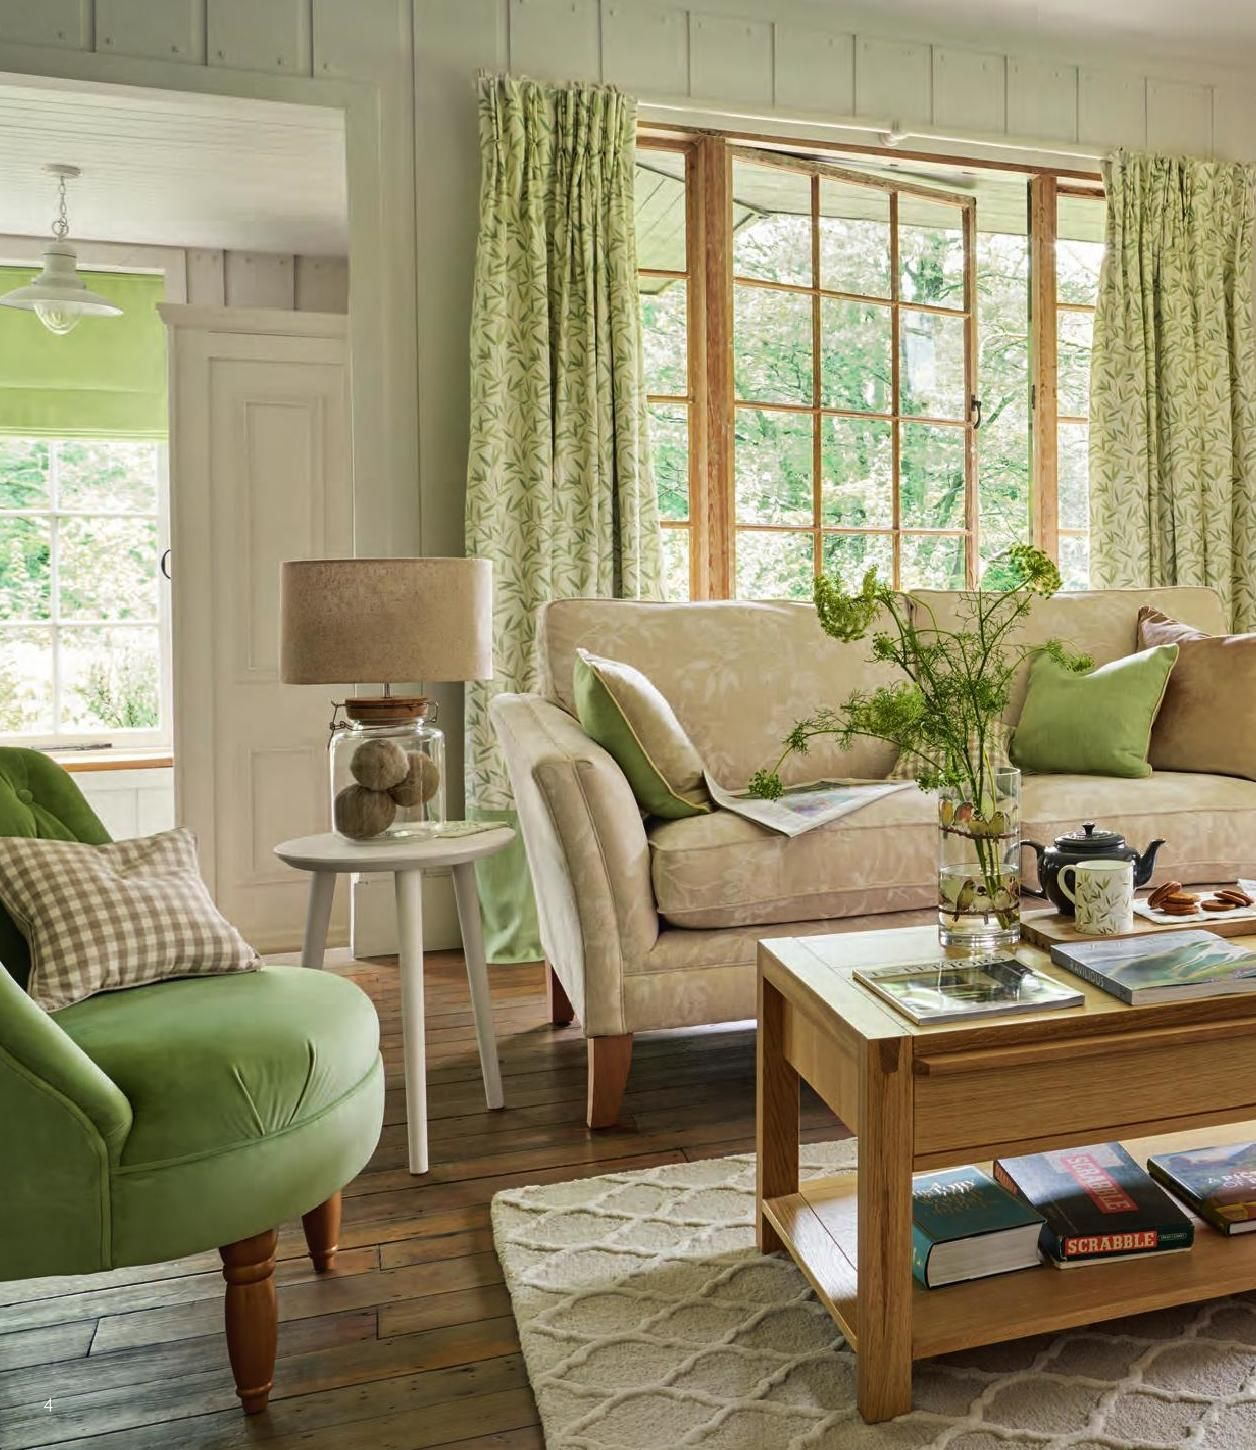 26 Relaxing Green Living Room Ideas: Pin On Home Inspiration